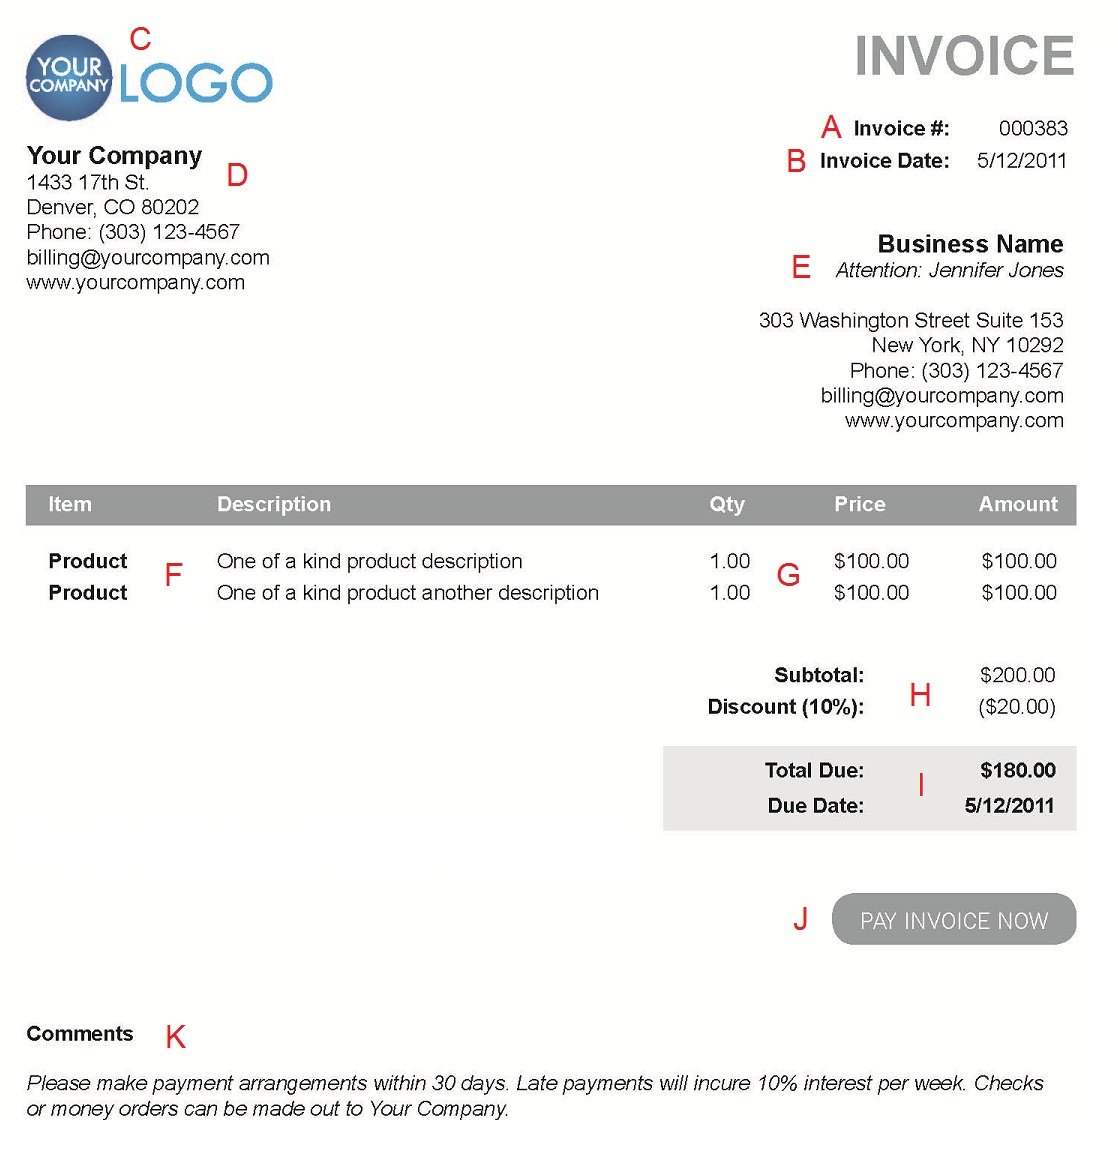 Usdgus  Winsome The  Different Sections Of An Electronic Payment Invoice With Goodlooking A  With Breathtaking House Rental Receipt Template Also Hra Rent Receipt Format In Addition Receipt Voucher Template And Thermal Receipts Bpa As Well As Transmittal Receipt Additionally Generate Fake Receipt From Paysimplecom With Usdgus  Goodlooking The  Different Sections Of An Electronic Payment Invoice With Breathtaking A  And Winsome House Rental Receipt Template Also Hra Rent Receipt Format In Addition Receipt Voucher Template From Paysimplecom